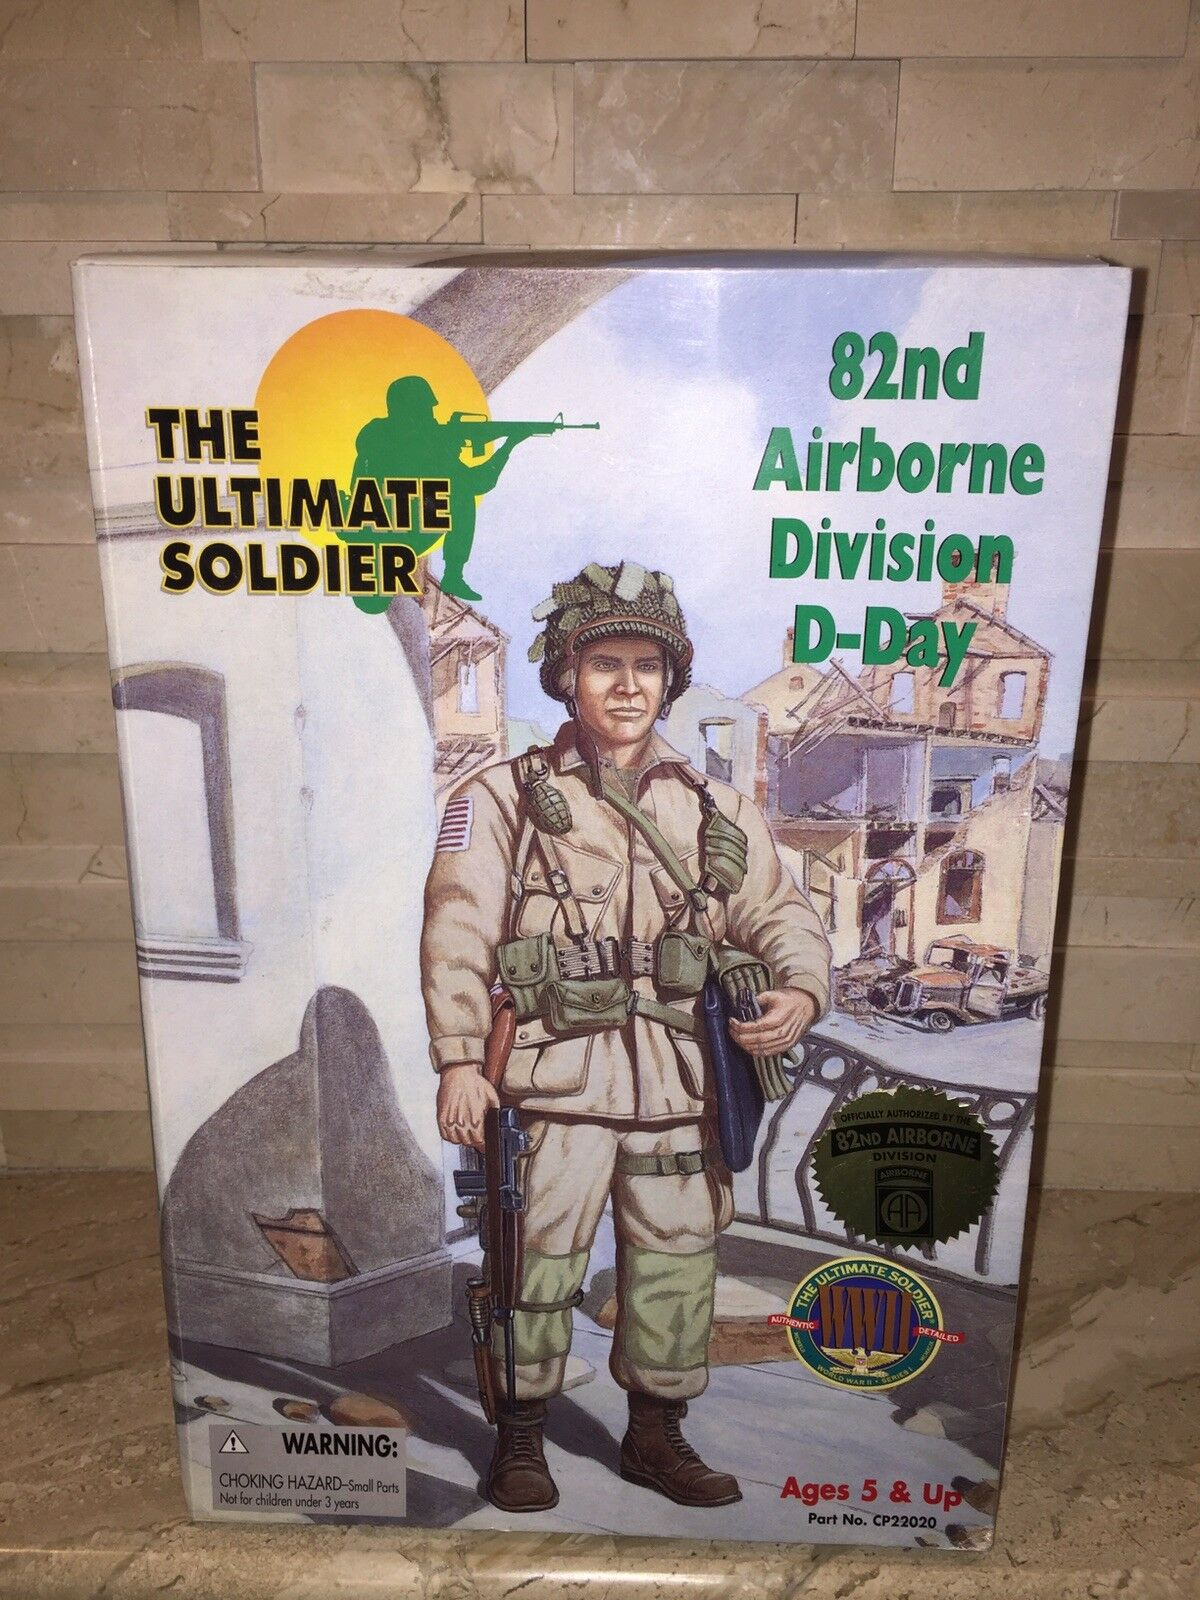 THE ULTIMATE SOLDIER 82ND AIRBORNE DIVISION D-DAY ACTION FIGURE